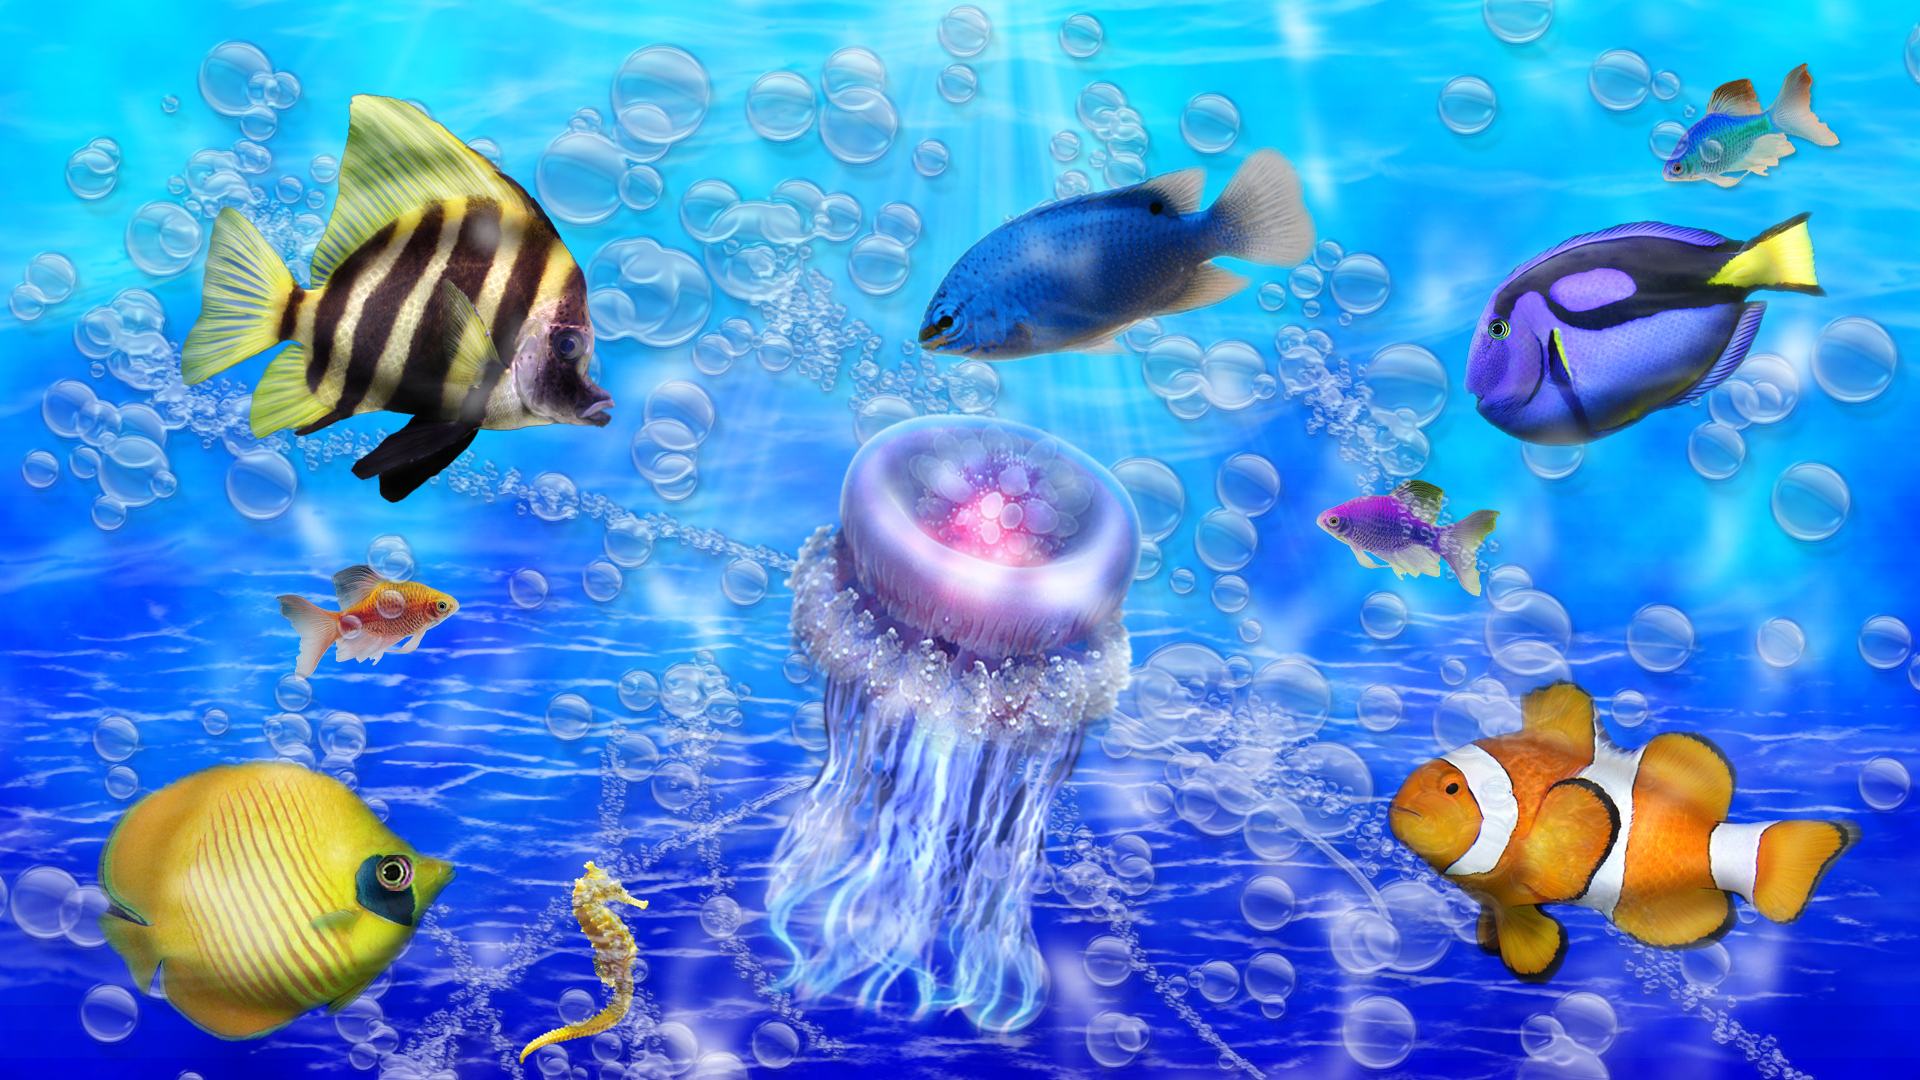 Ocean In Color, Beautiful, Colorful, Fish, Jelly Fish, Ocean, Water Wallpaper